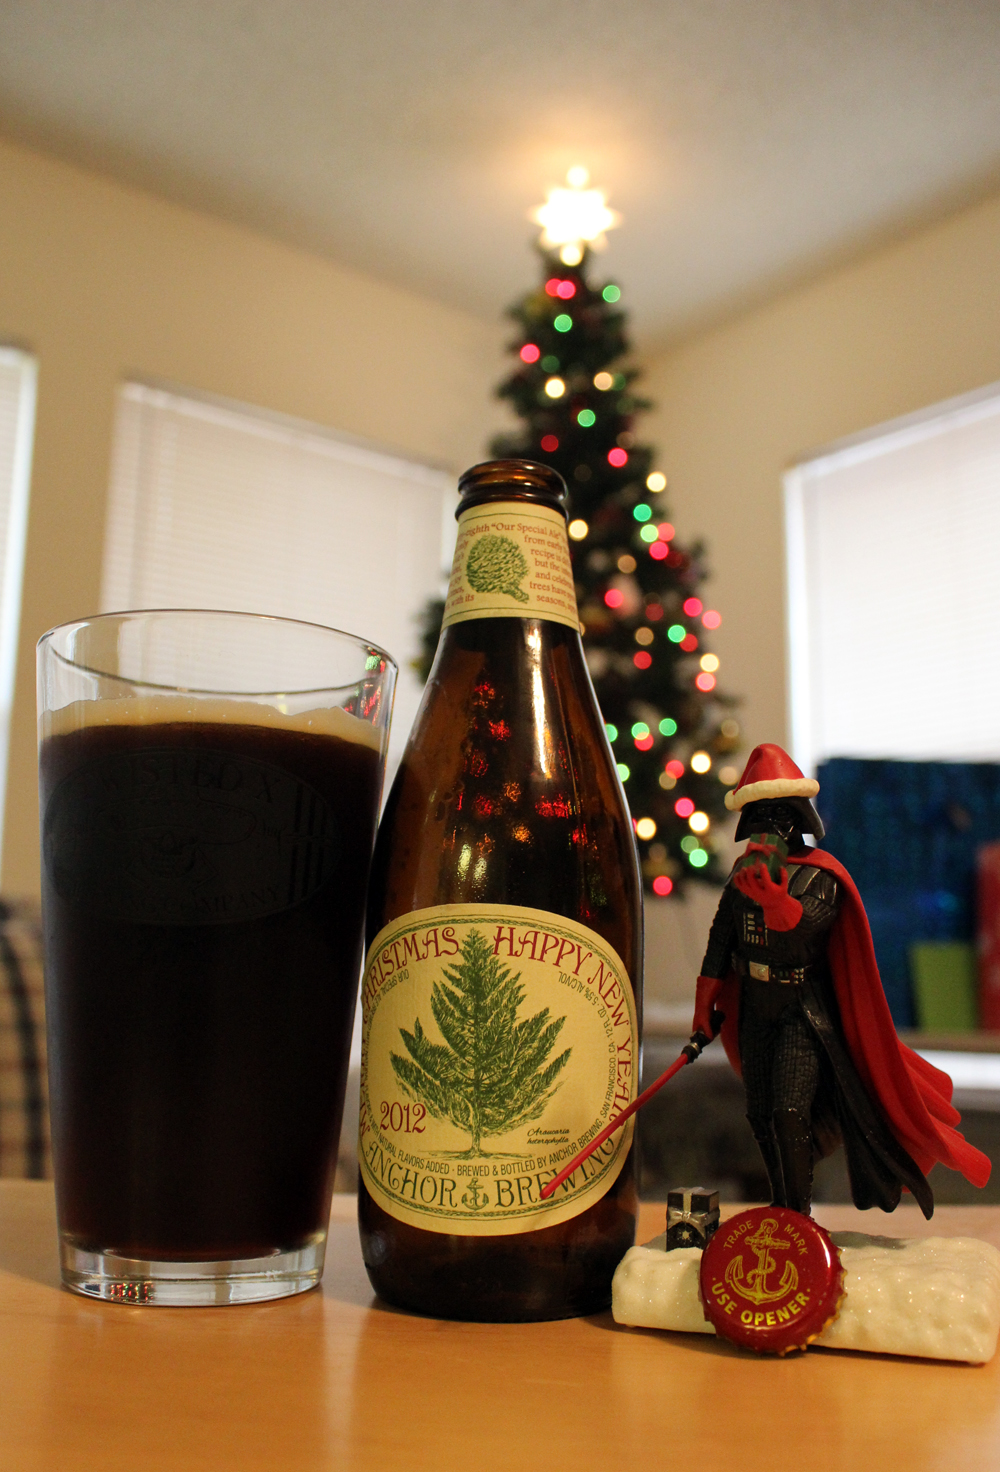 beer merry christmas happy new year our special ale 2012 style winter warmer abv 5 5 character since 1975 this beer gets a different recipe and